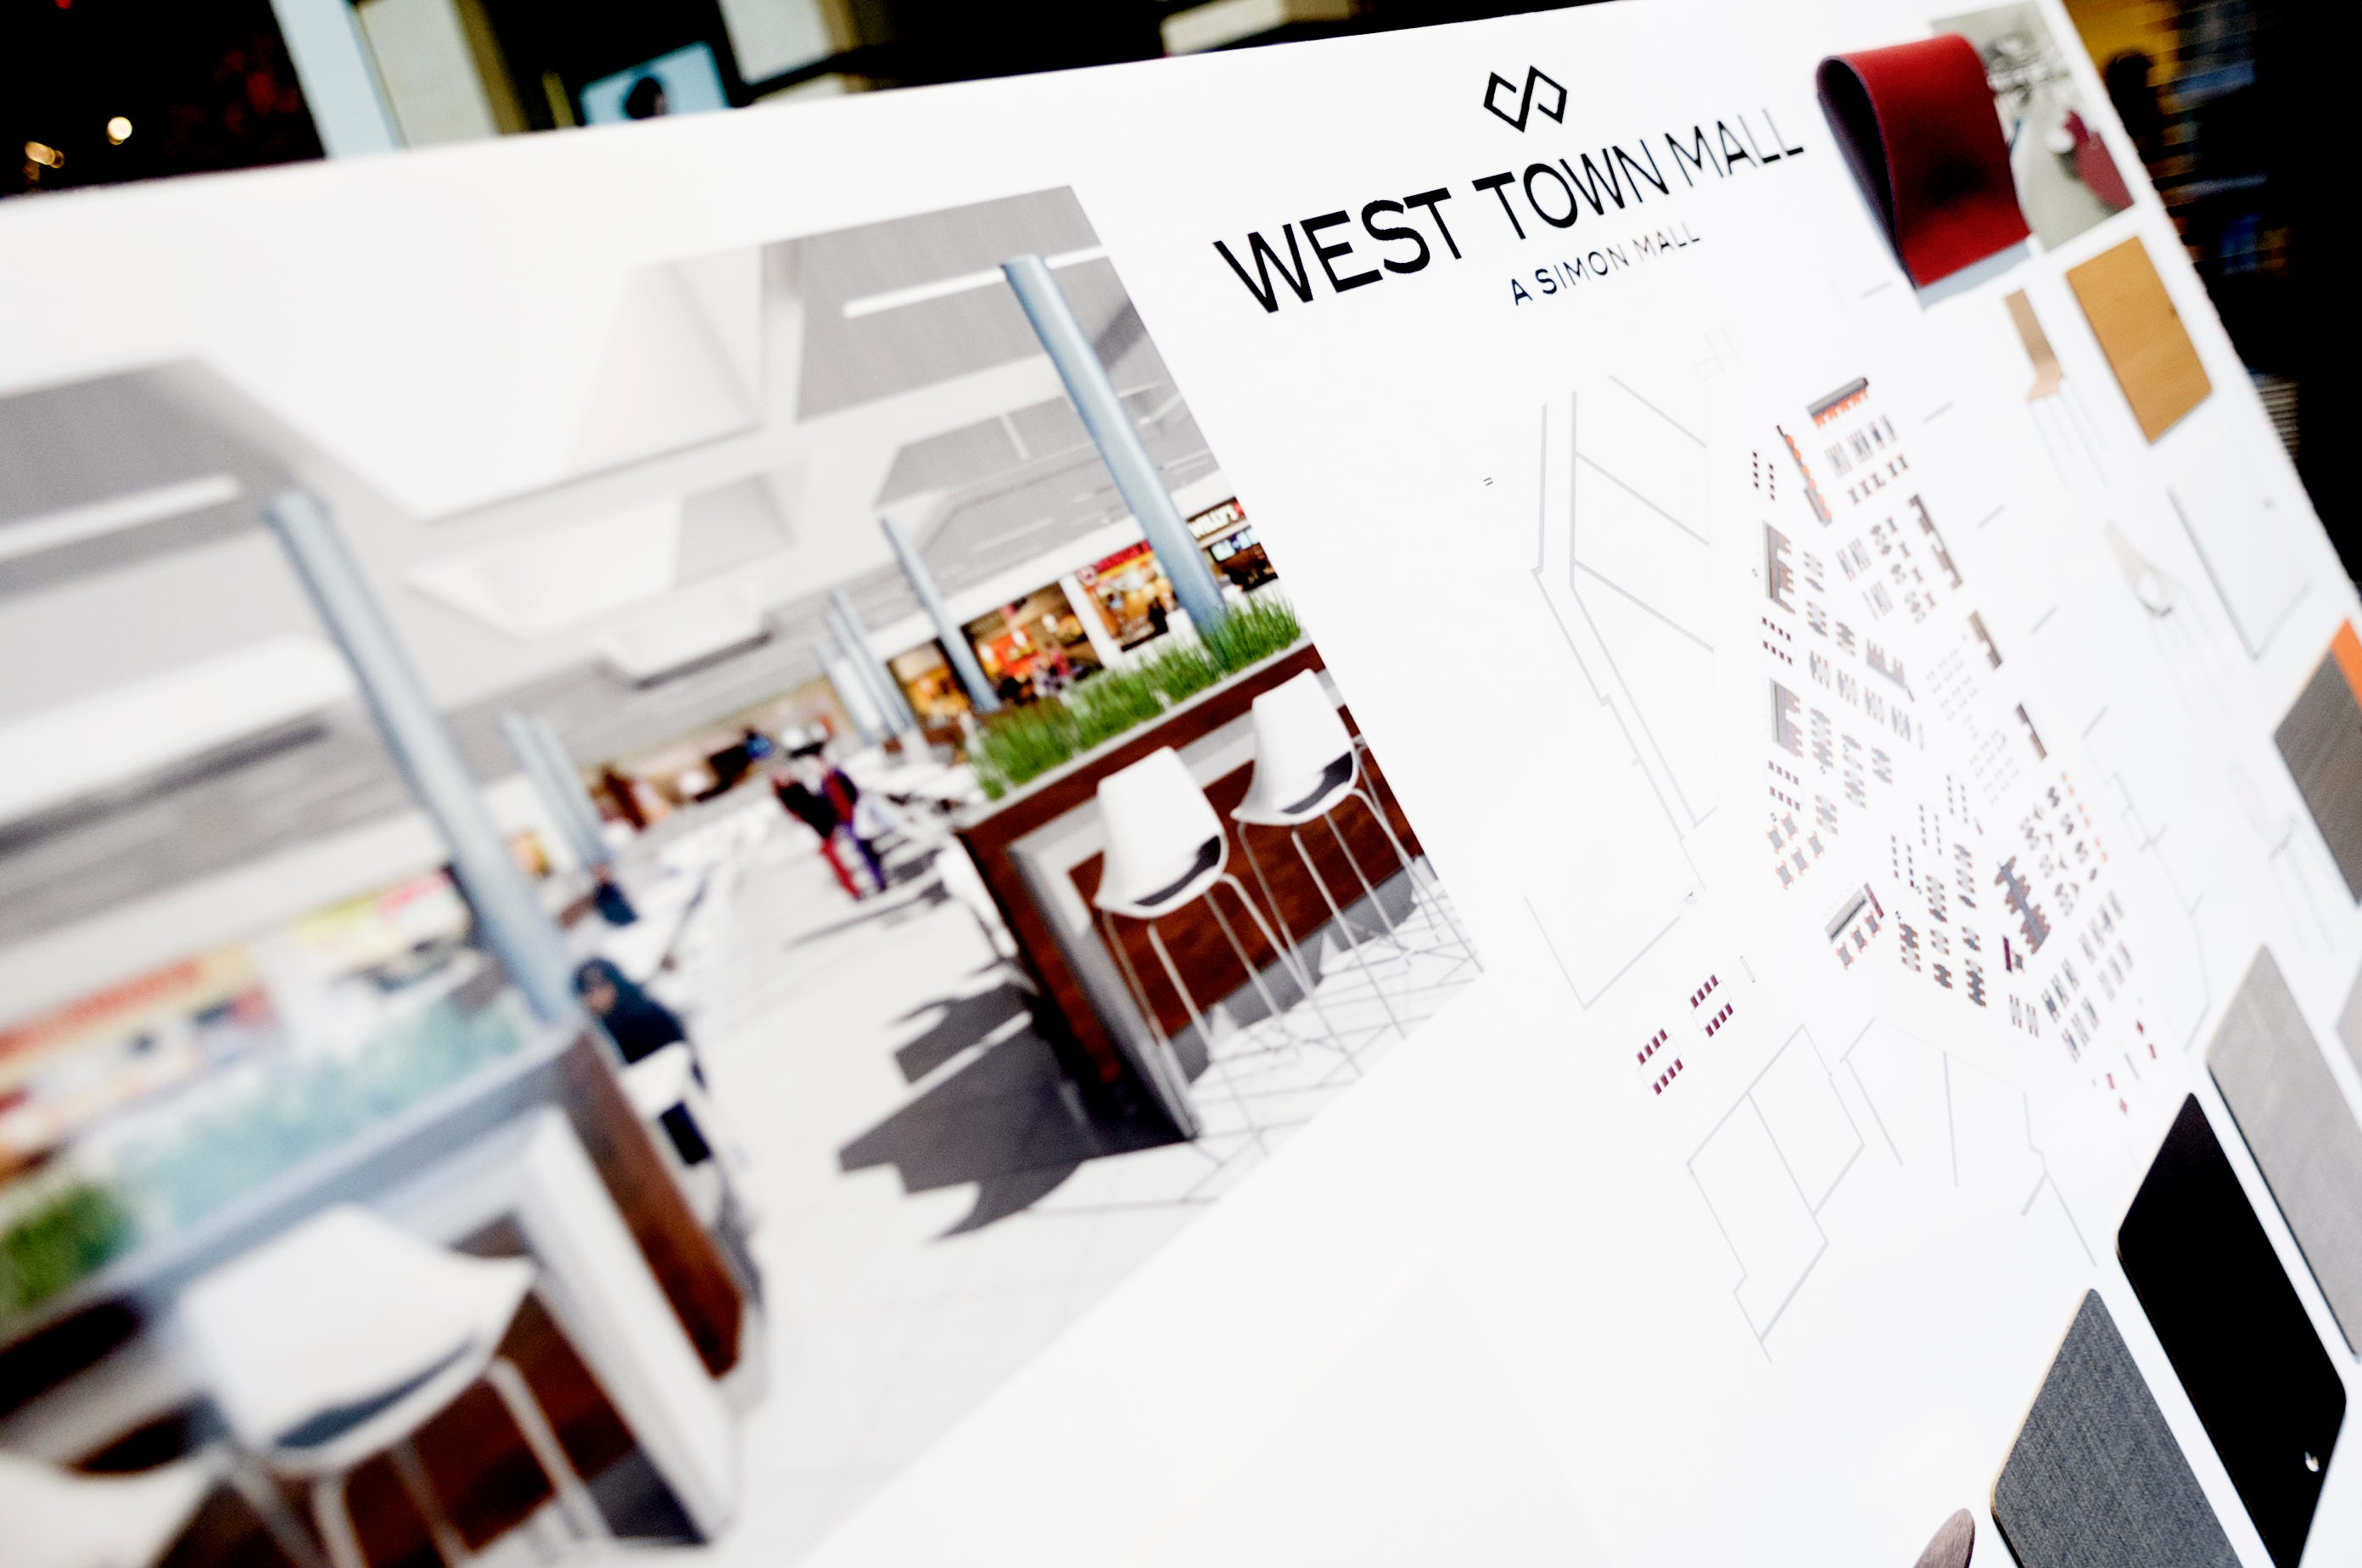 West Town Mall Announces Renovations And Upgrades